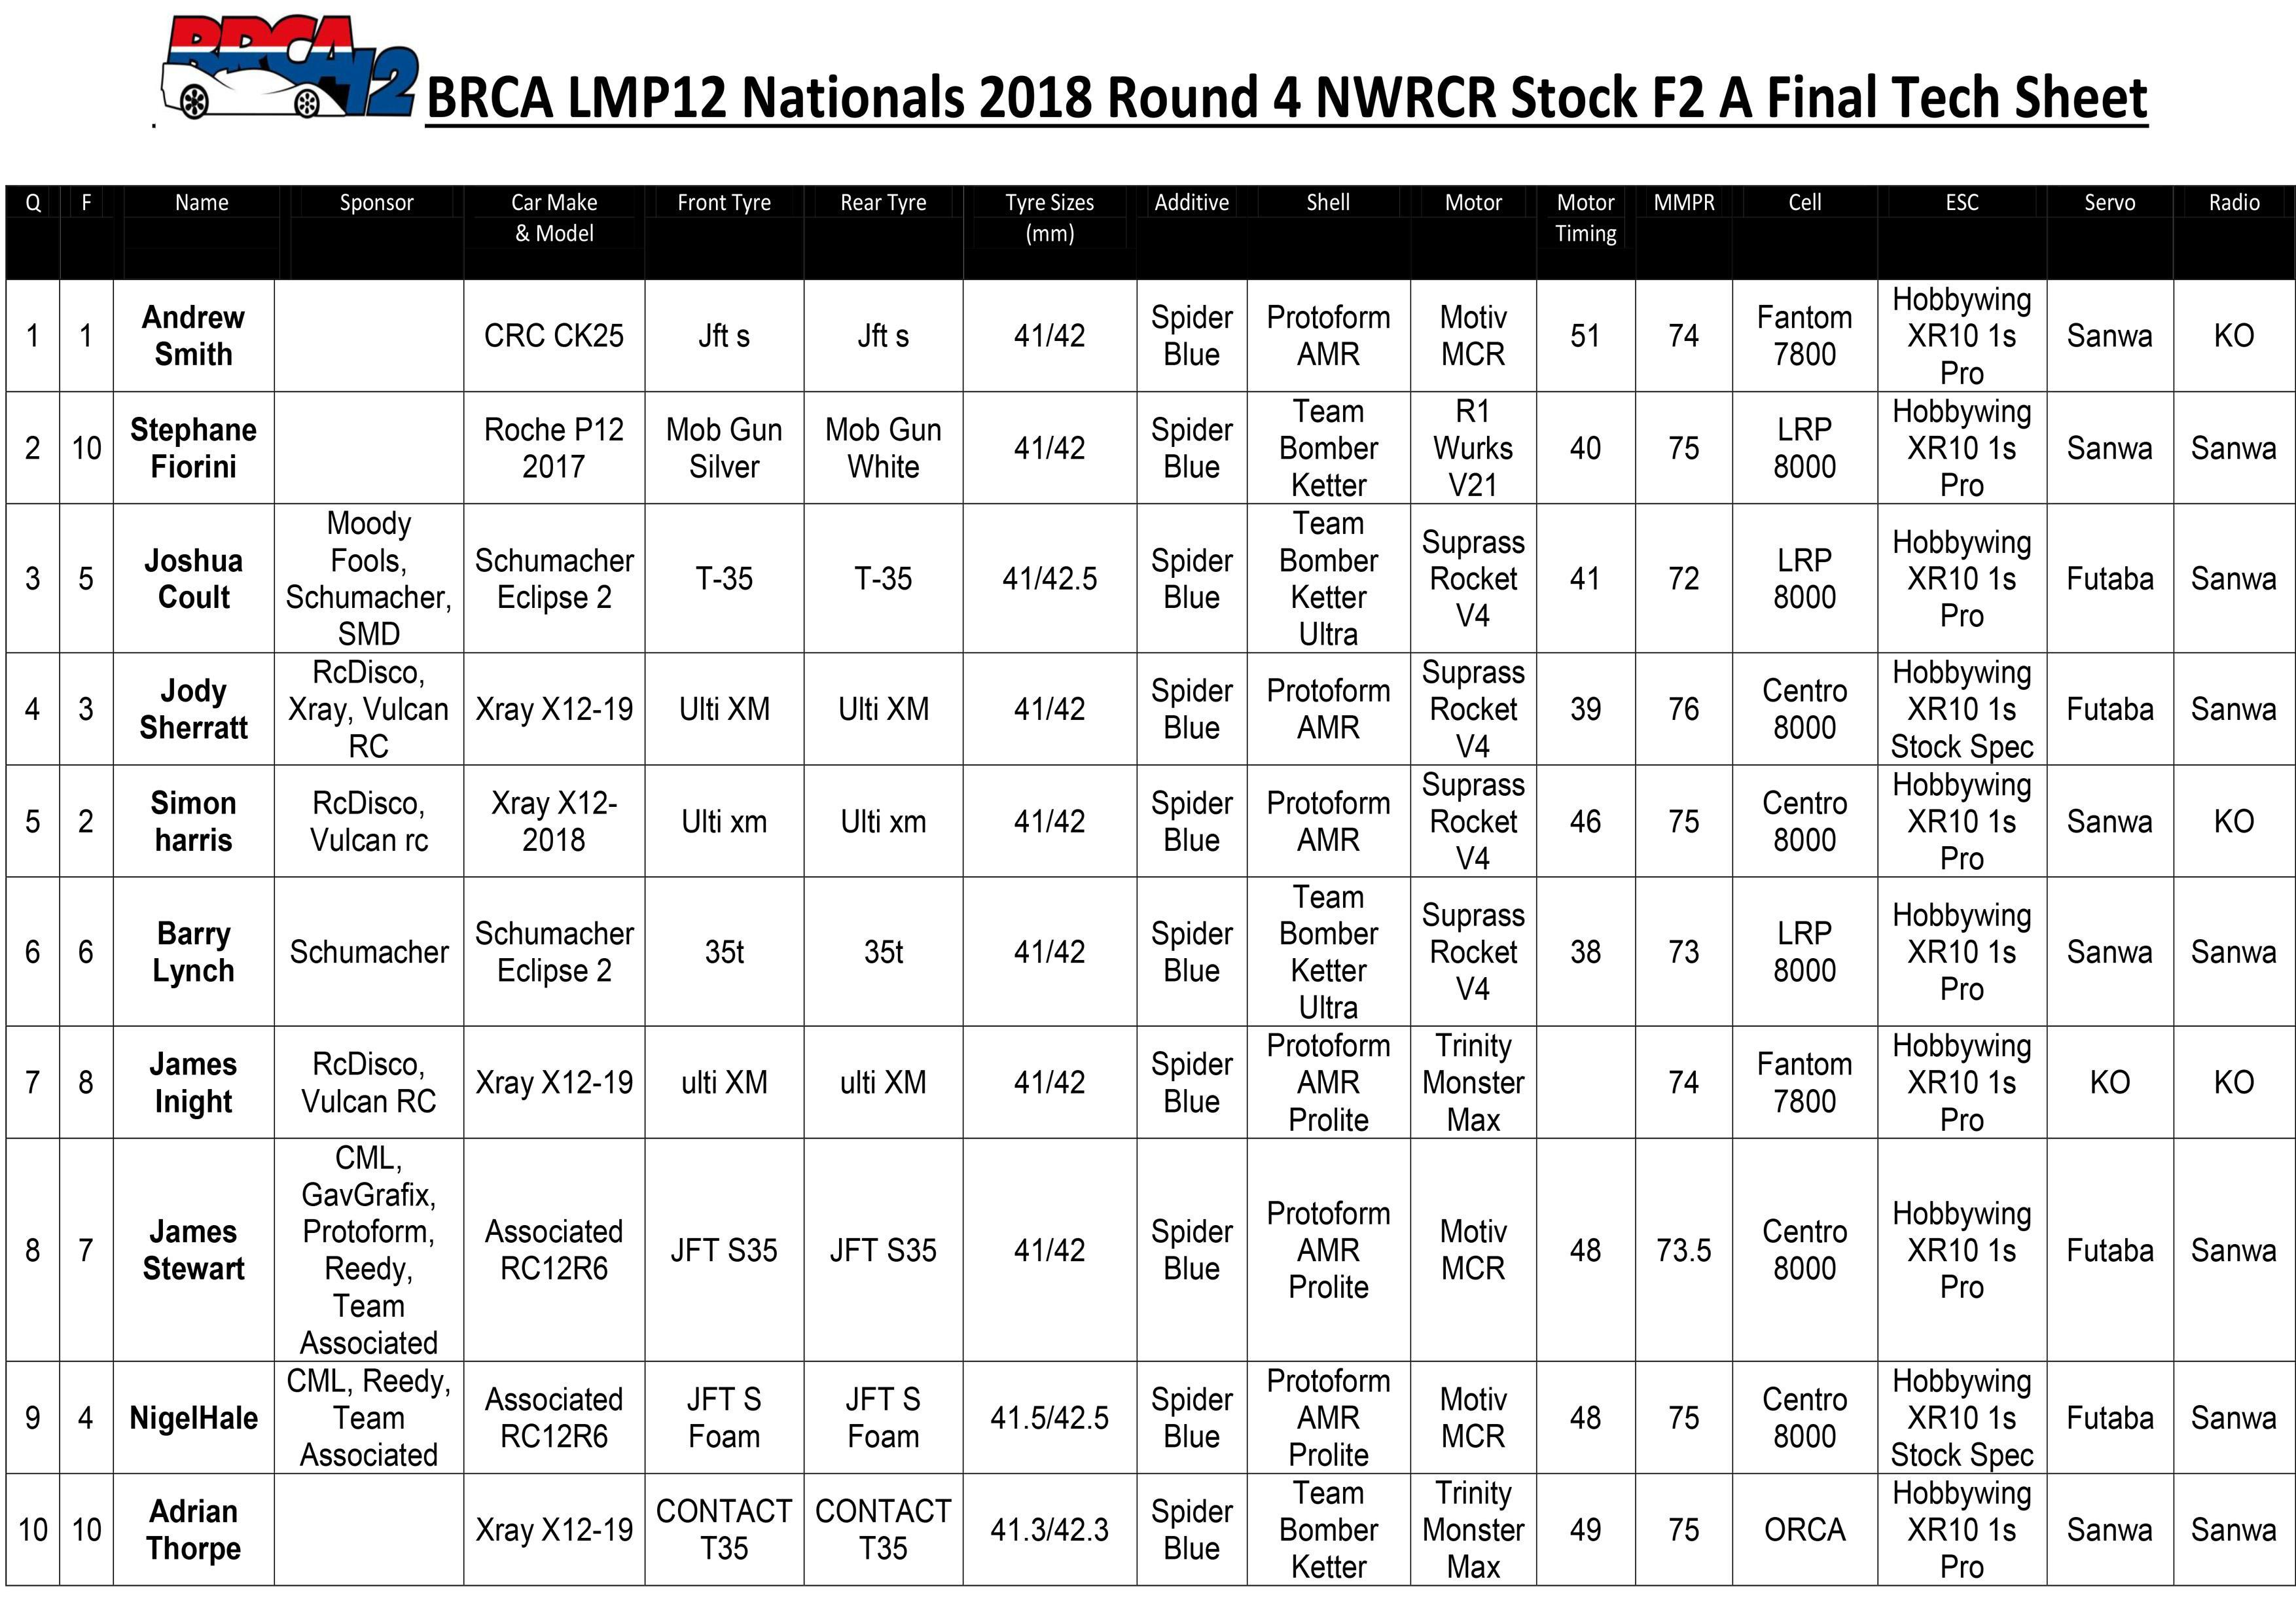 NWRCR Stock F2 Tech Sheet